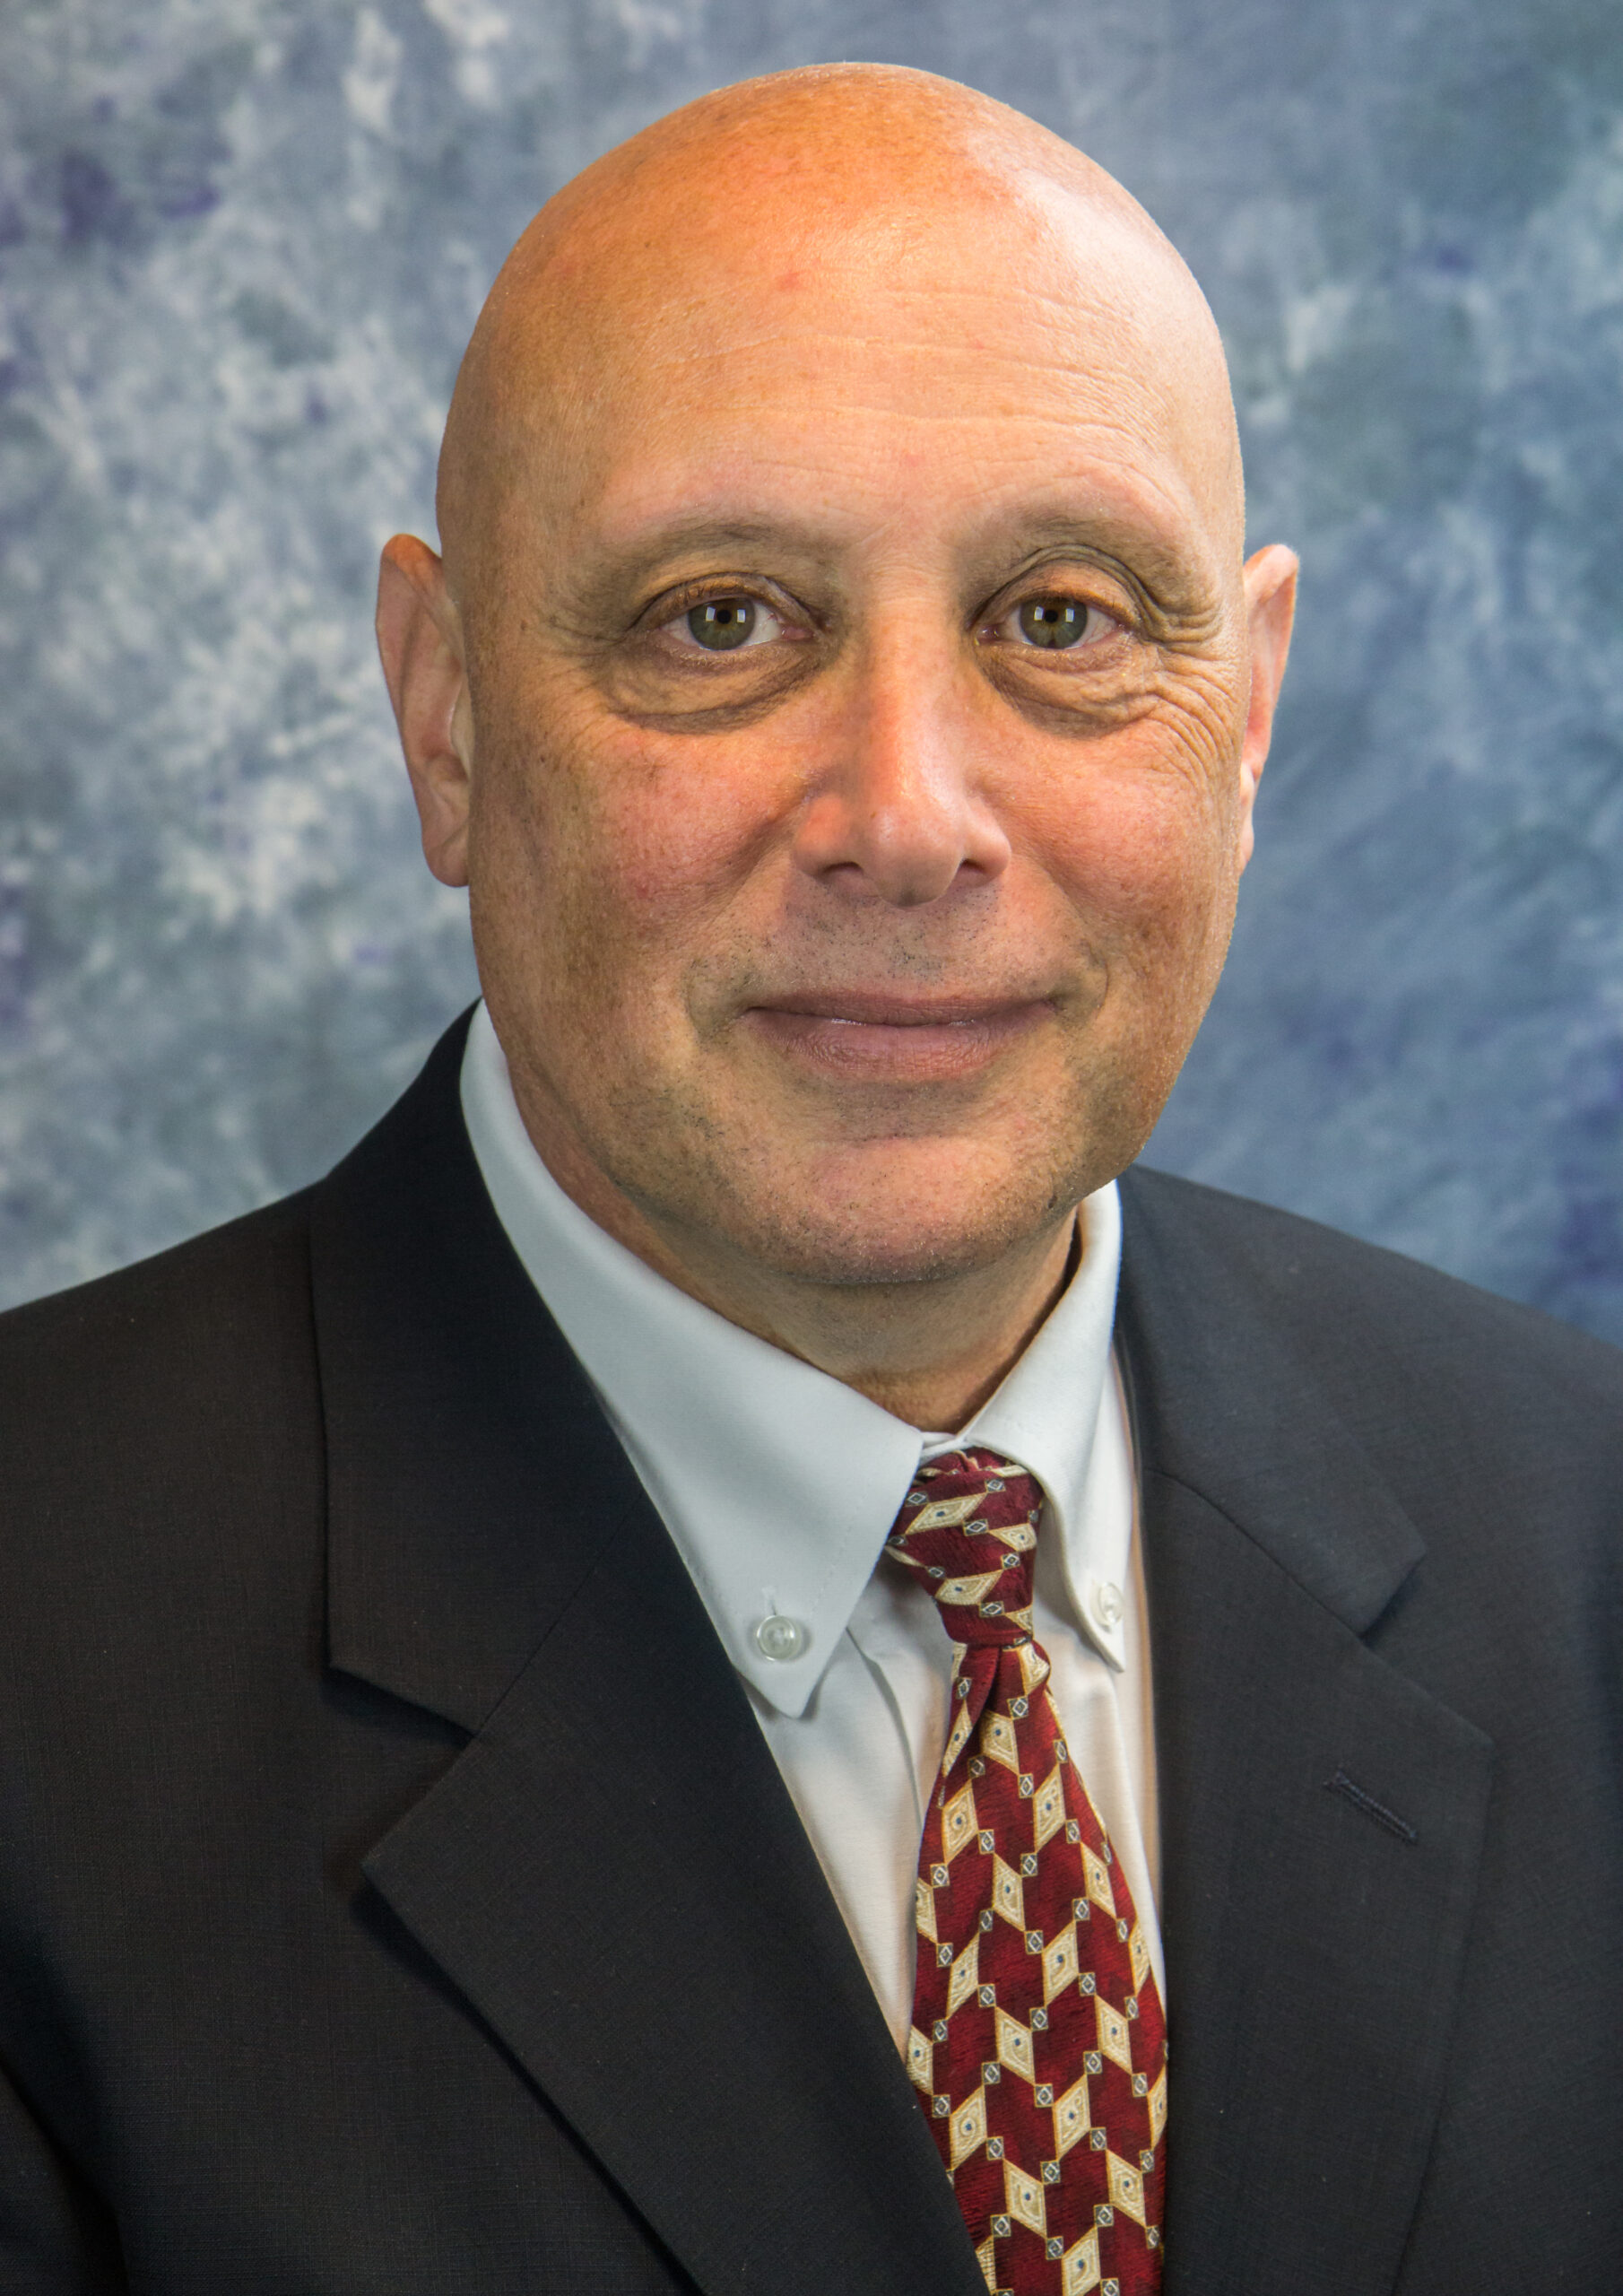 Michael Fischer, Director of General Services